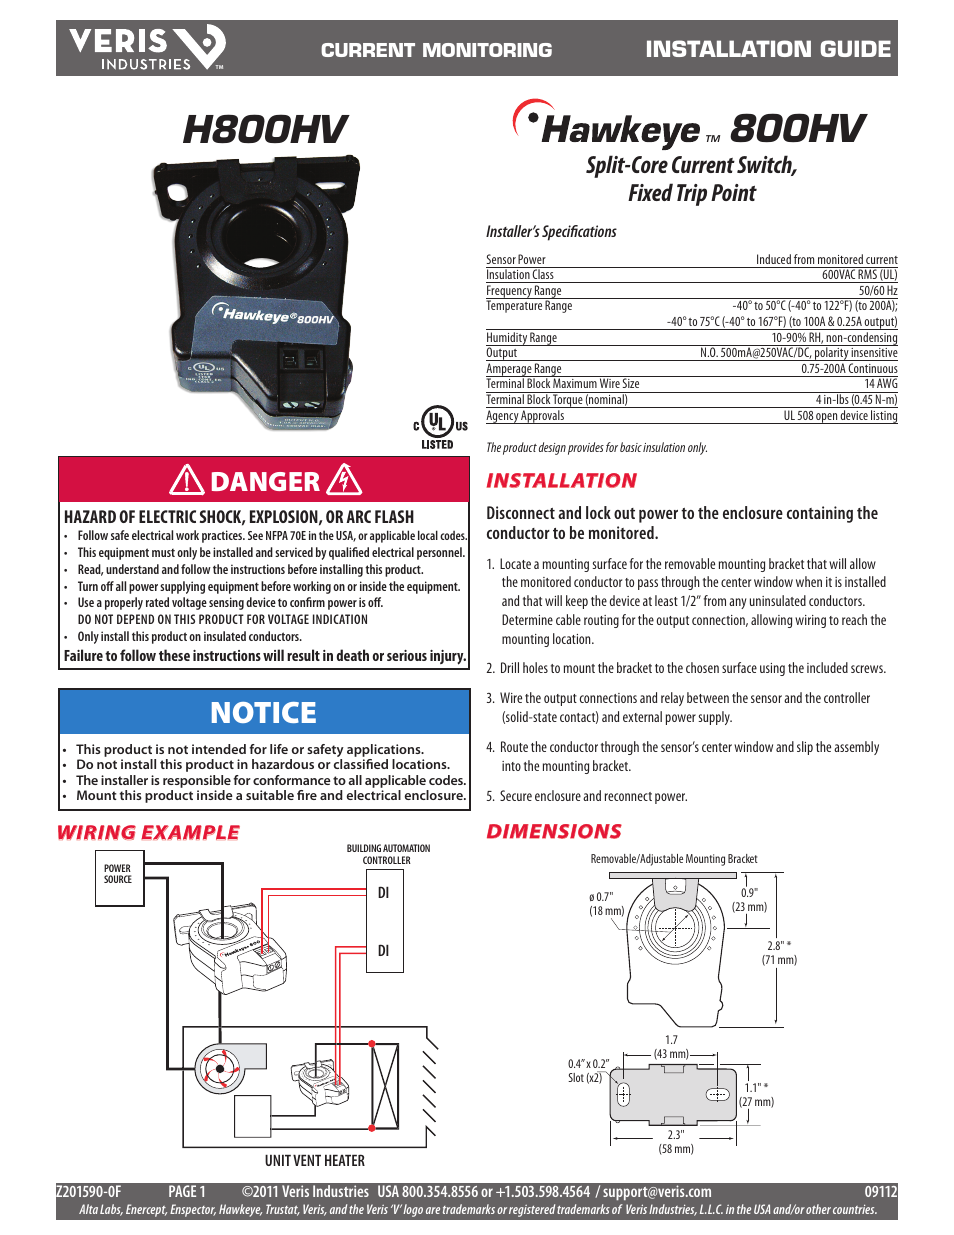 Veris Industries H800HV Install User Manual 2 pages